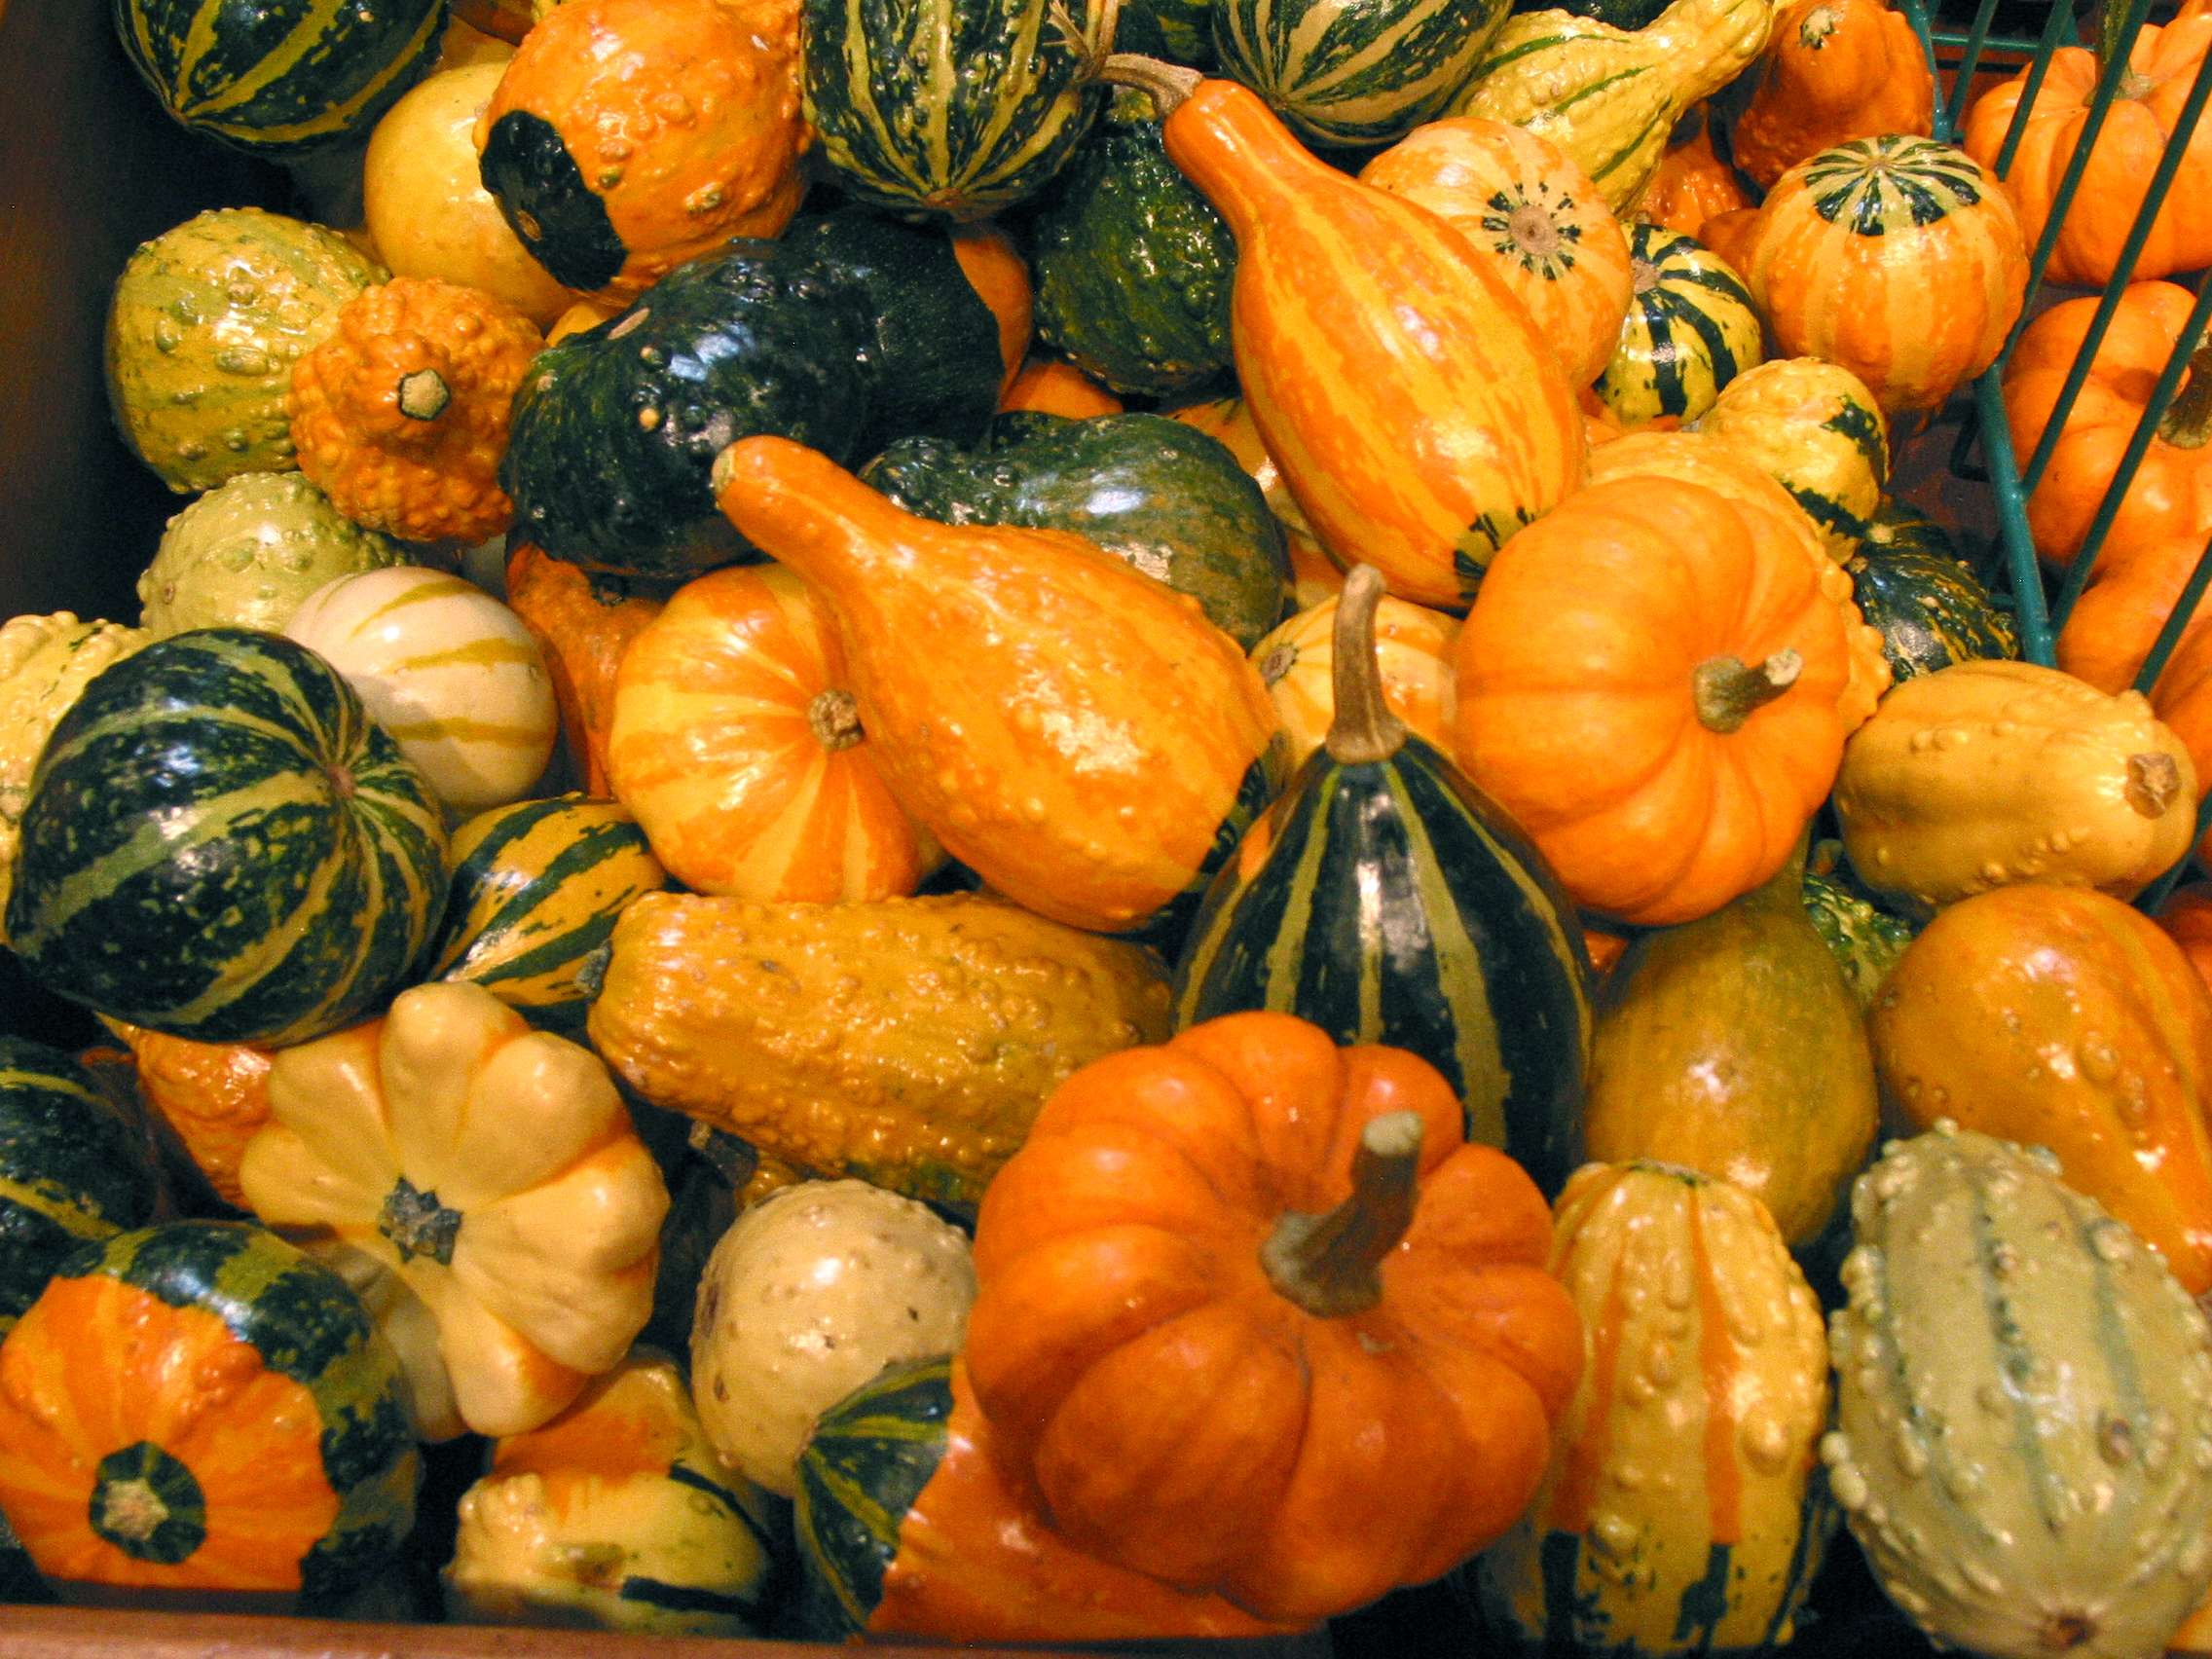 Squash Vegetable 28 Images Squash Free Stock Photo